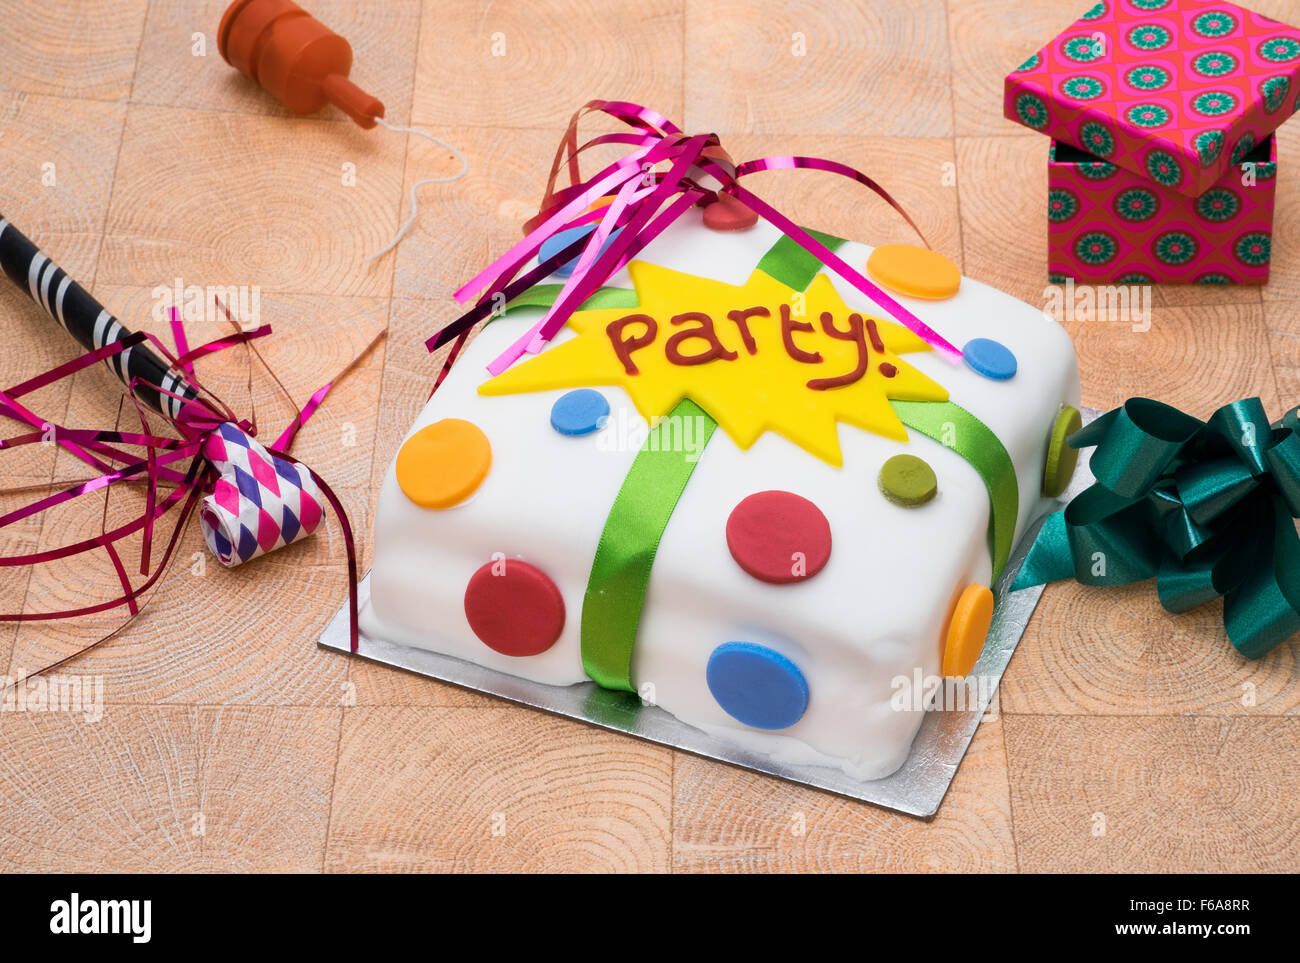 A party celebration cake with various party items - Stock Image